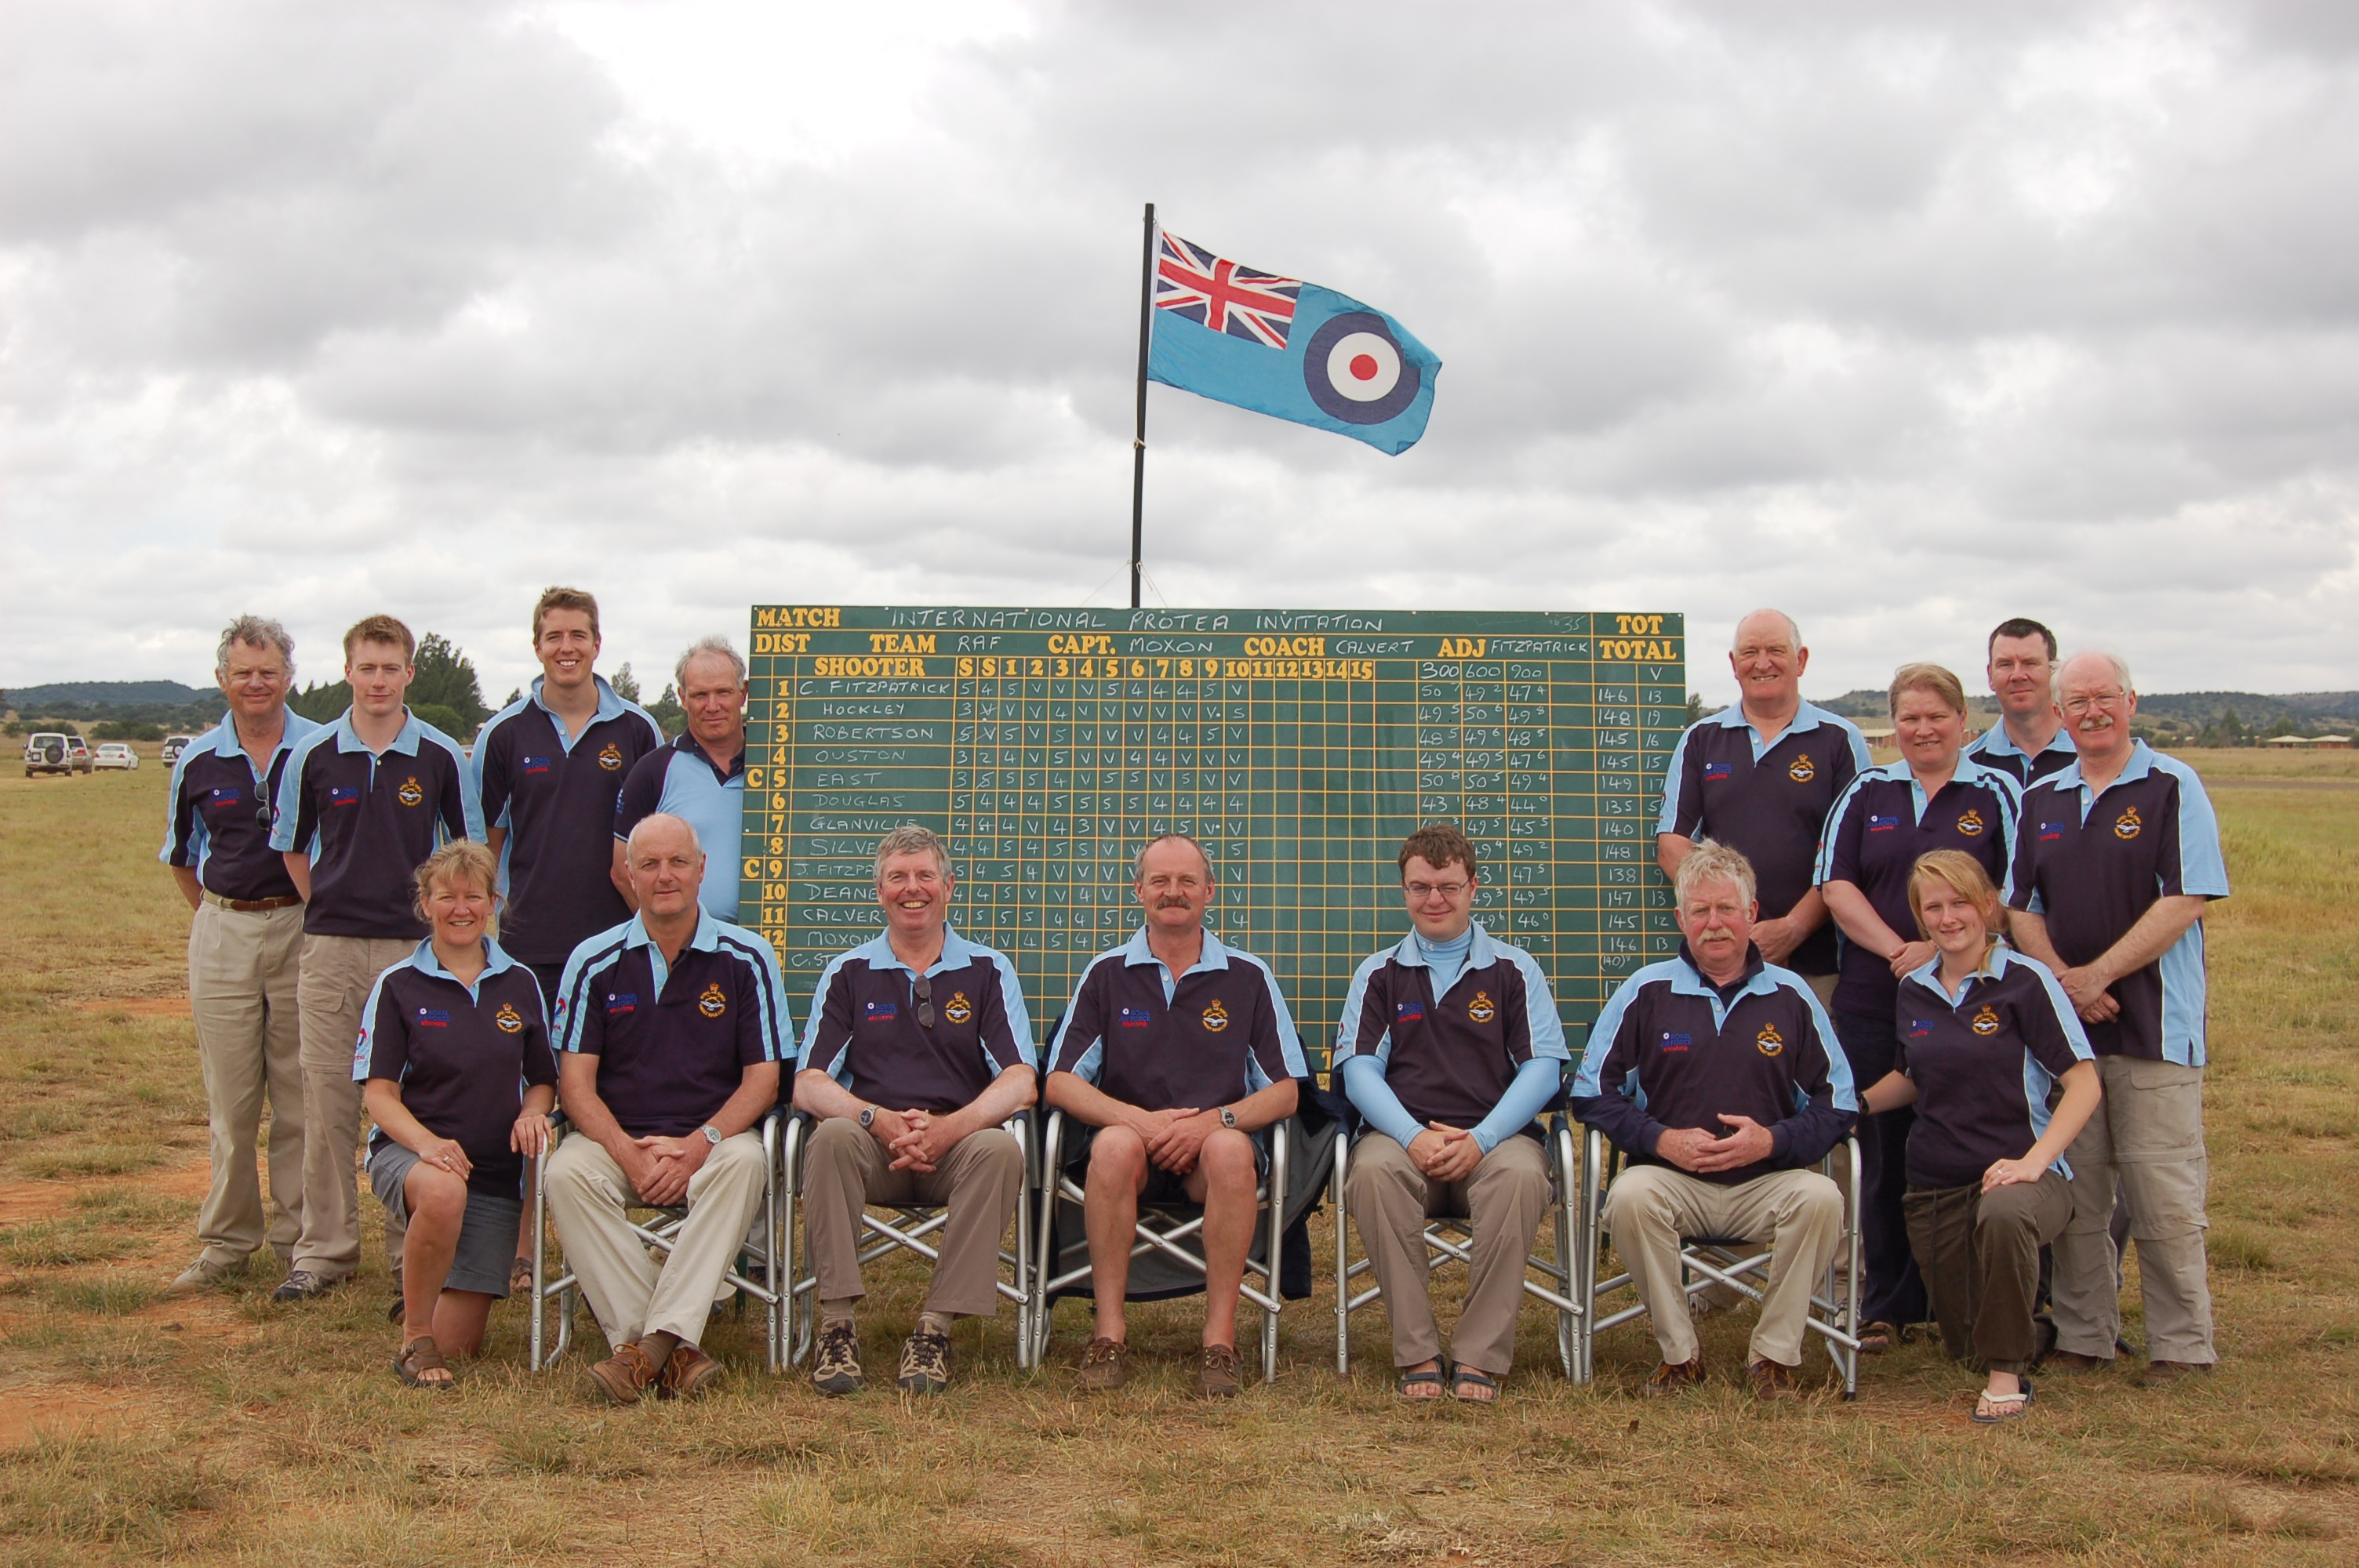 RAF Team to South Africa 2010